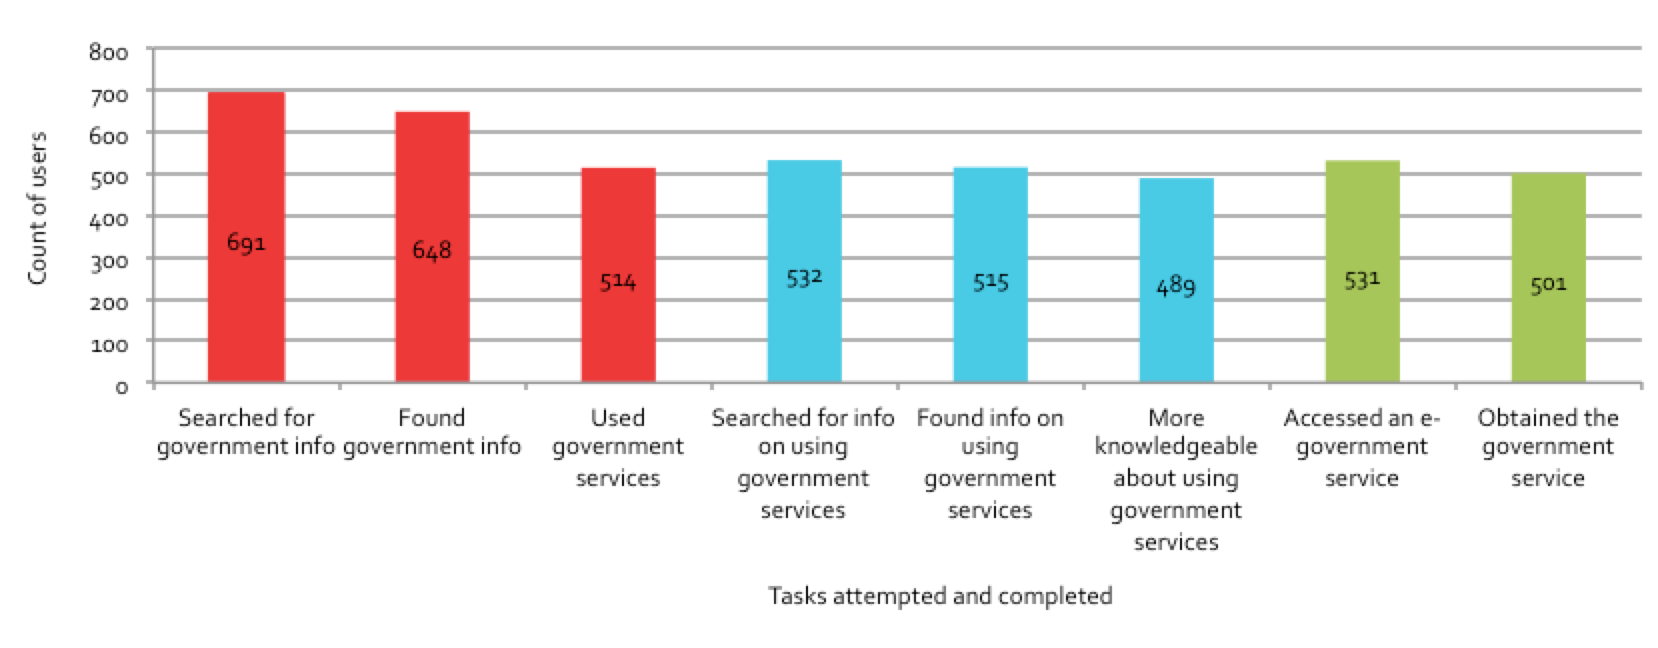 Figure 5.7: Tasks attempted and completed, governance domain